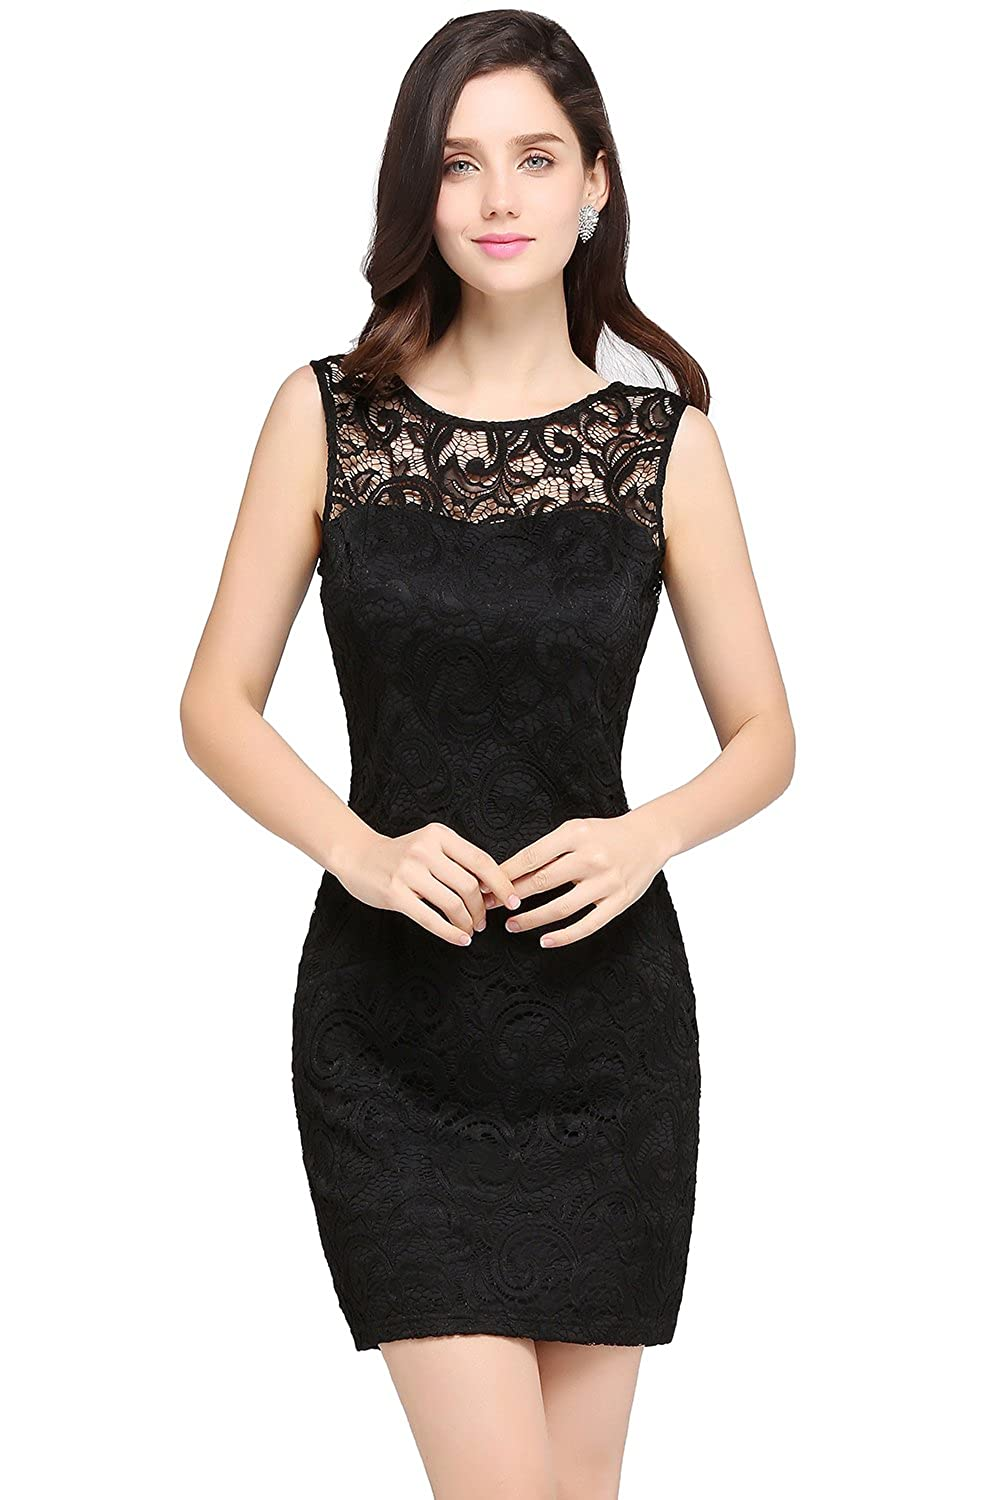 KuDress Chic Appliques Black Sleeveless Sexy Lace Ruffles Short Party Prom Dress(Customizable) at Amazon Womens Clothing store: